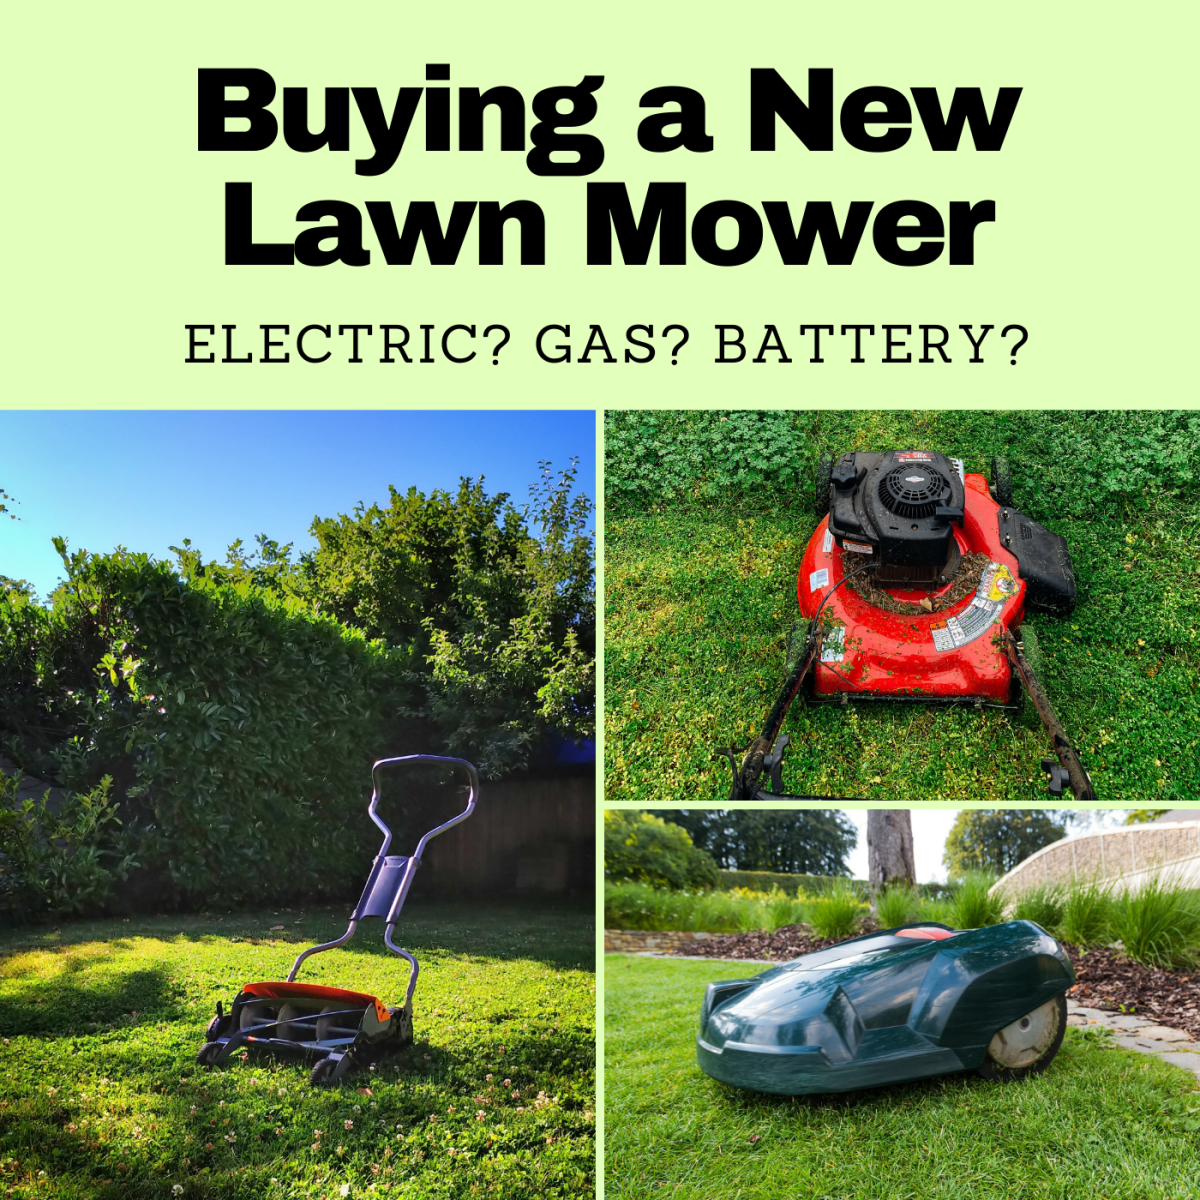 Which kind of lawn mower will best suit your needs?